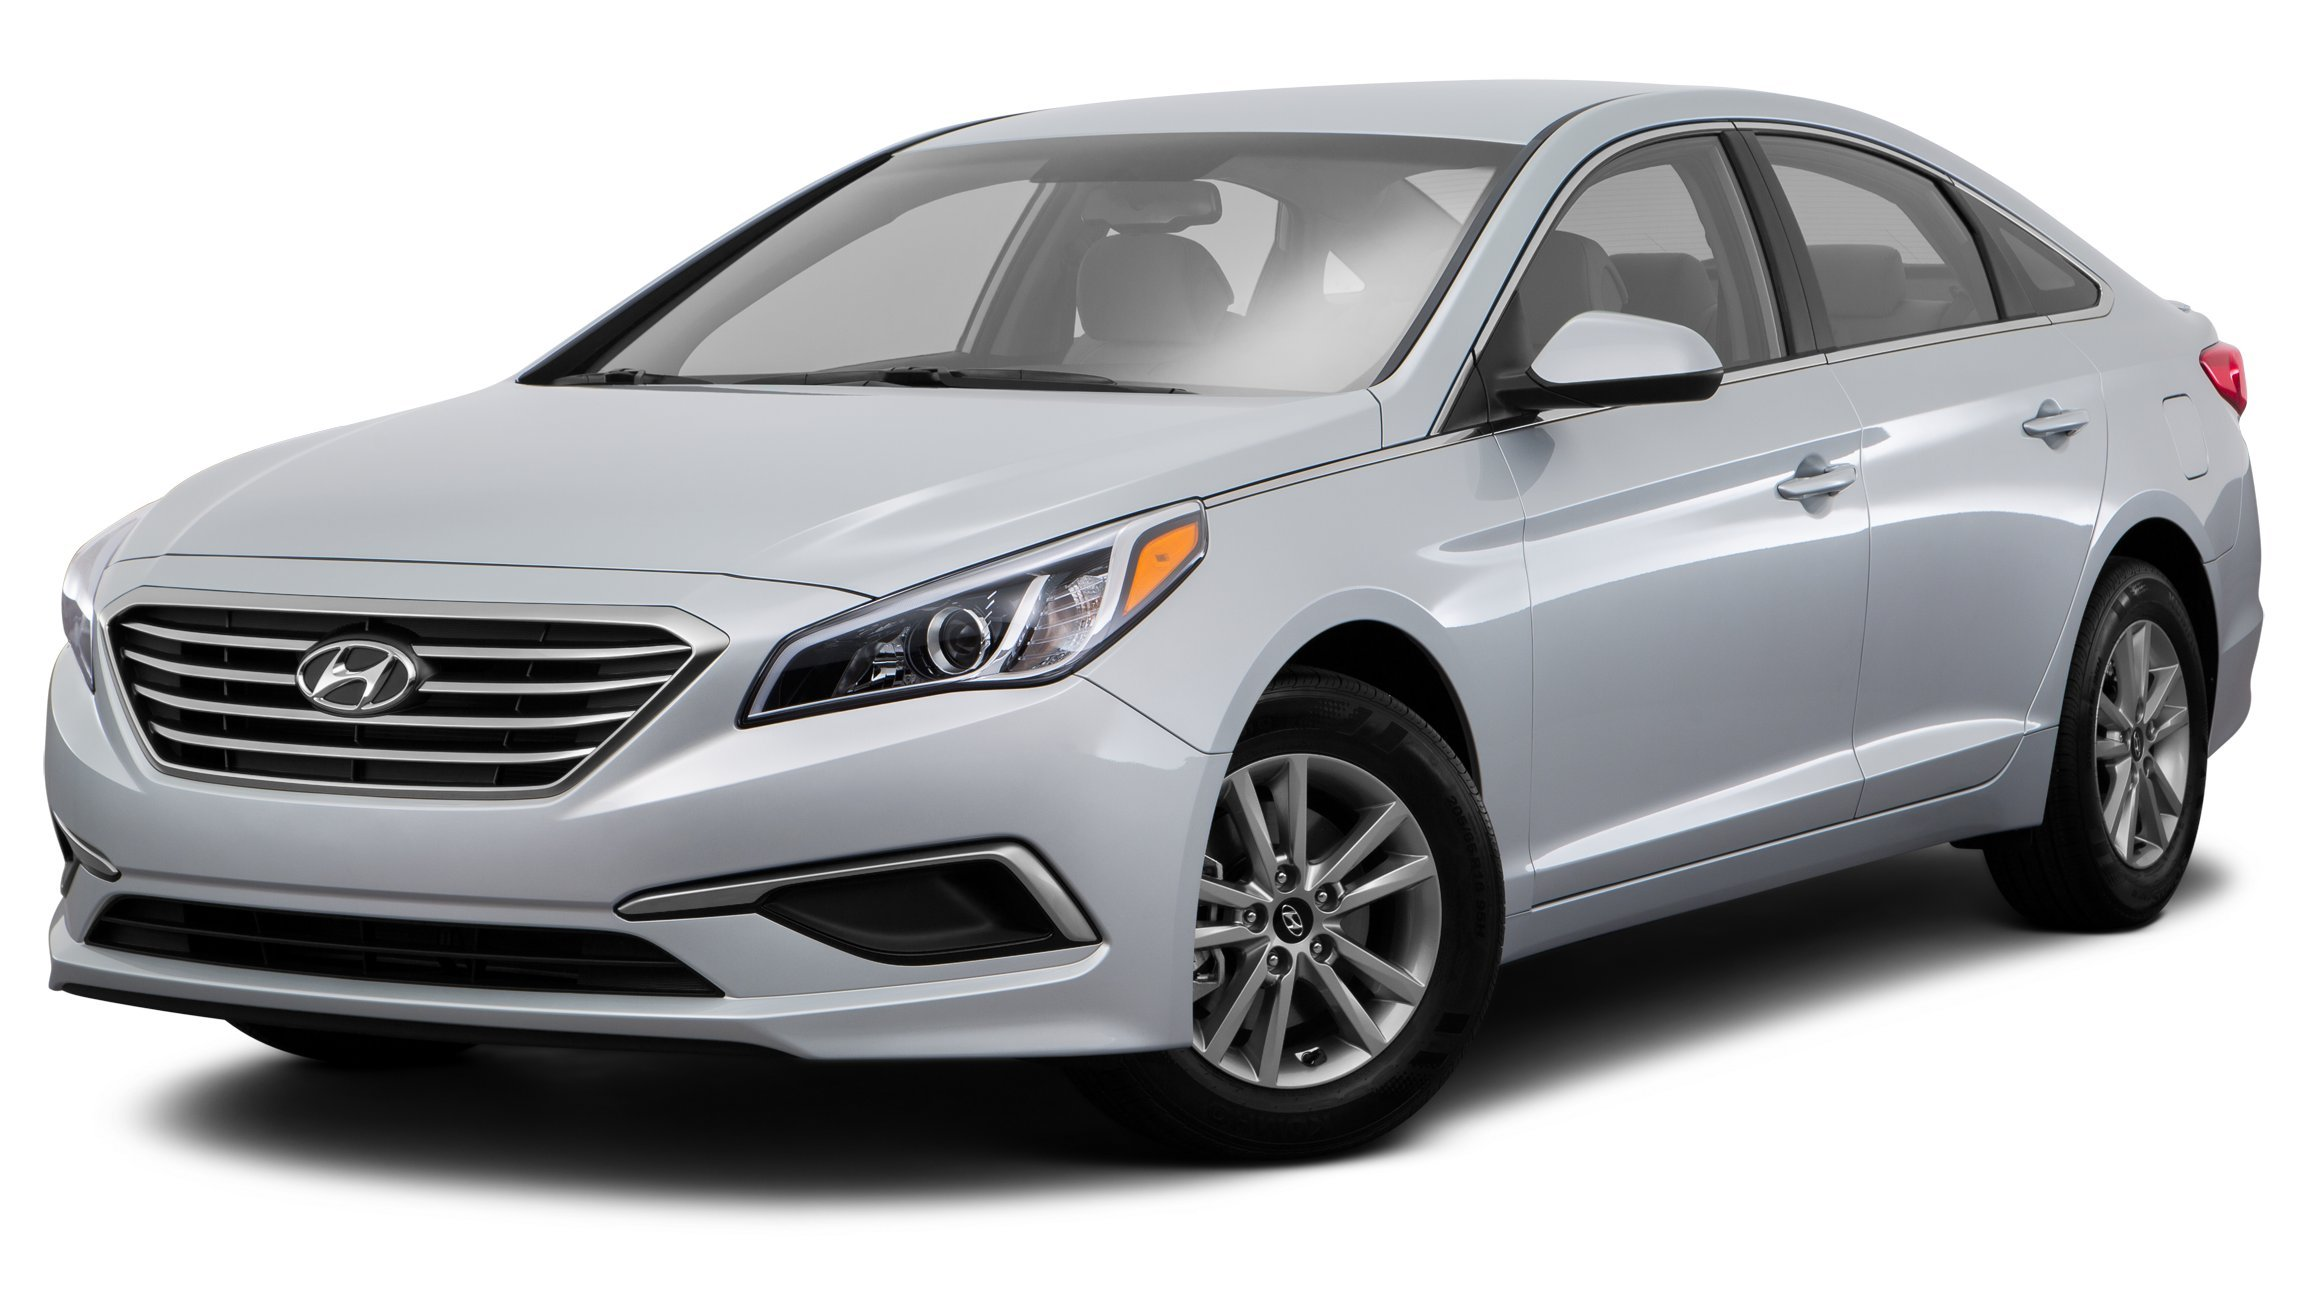 sonata hybrid reviews vehicle electric hyundai in speed cars plug top